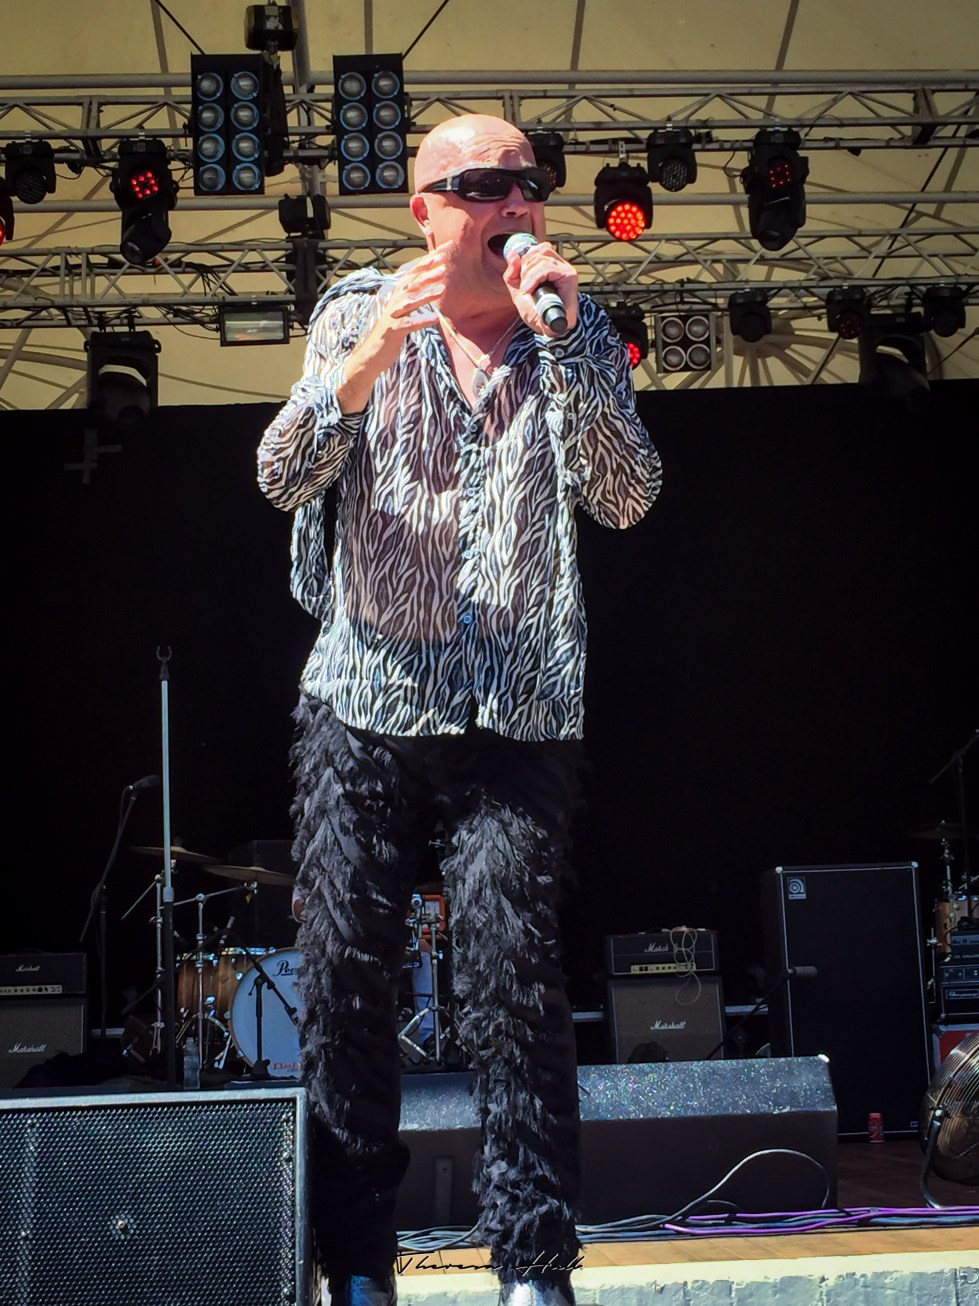 Lead singer Adam Thompson, Chocolate Starfish, at Red Hot Summer Tour, Canberra, 24 February 2019